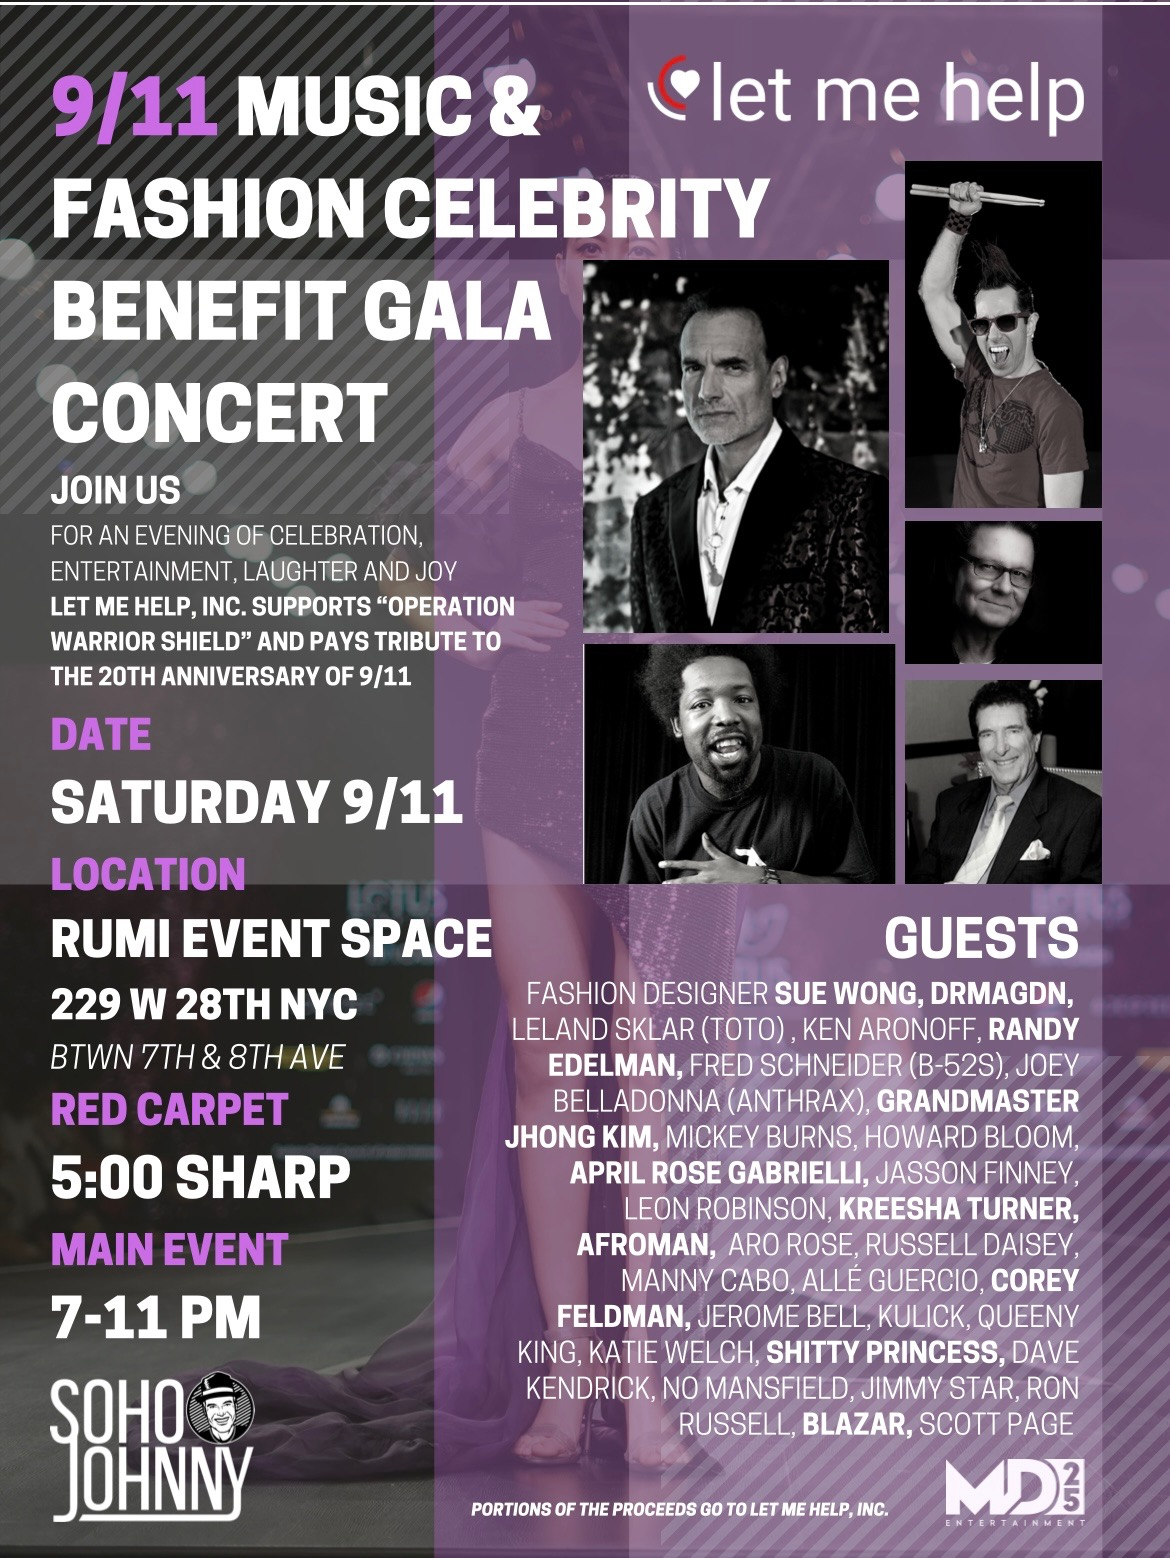 SohoJohnny's 9/11 Music & Fashion Celebrity Benefit Gala Concert 9/11/21 In NYC